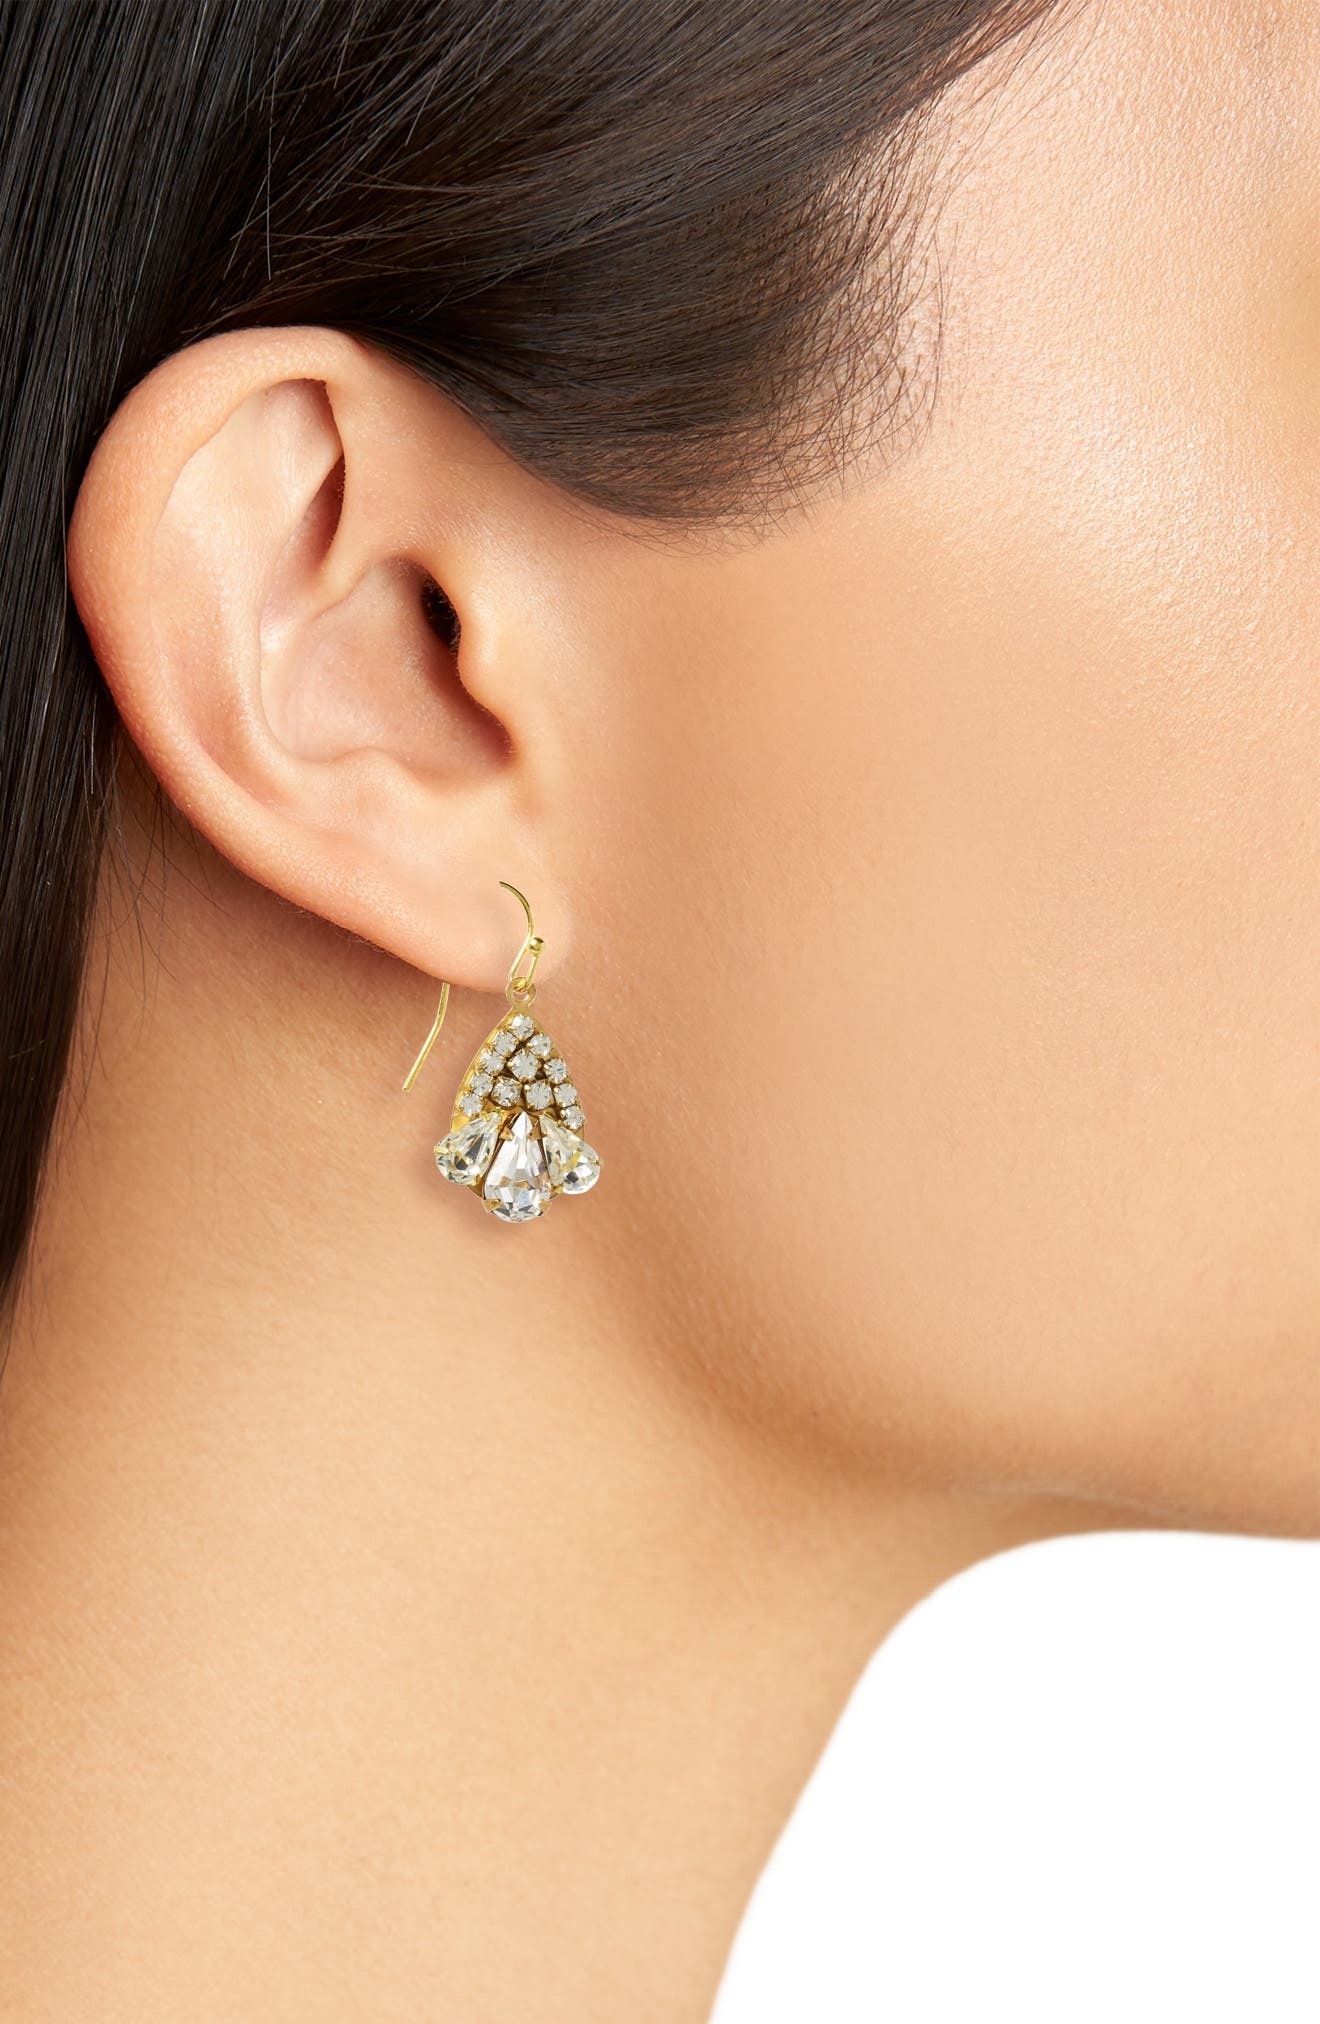 Scalloped Crystal Earrings,                             Alternate thumbnail 2, color,                             Crystal/ Gold